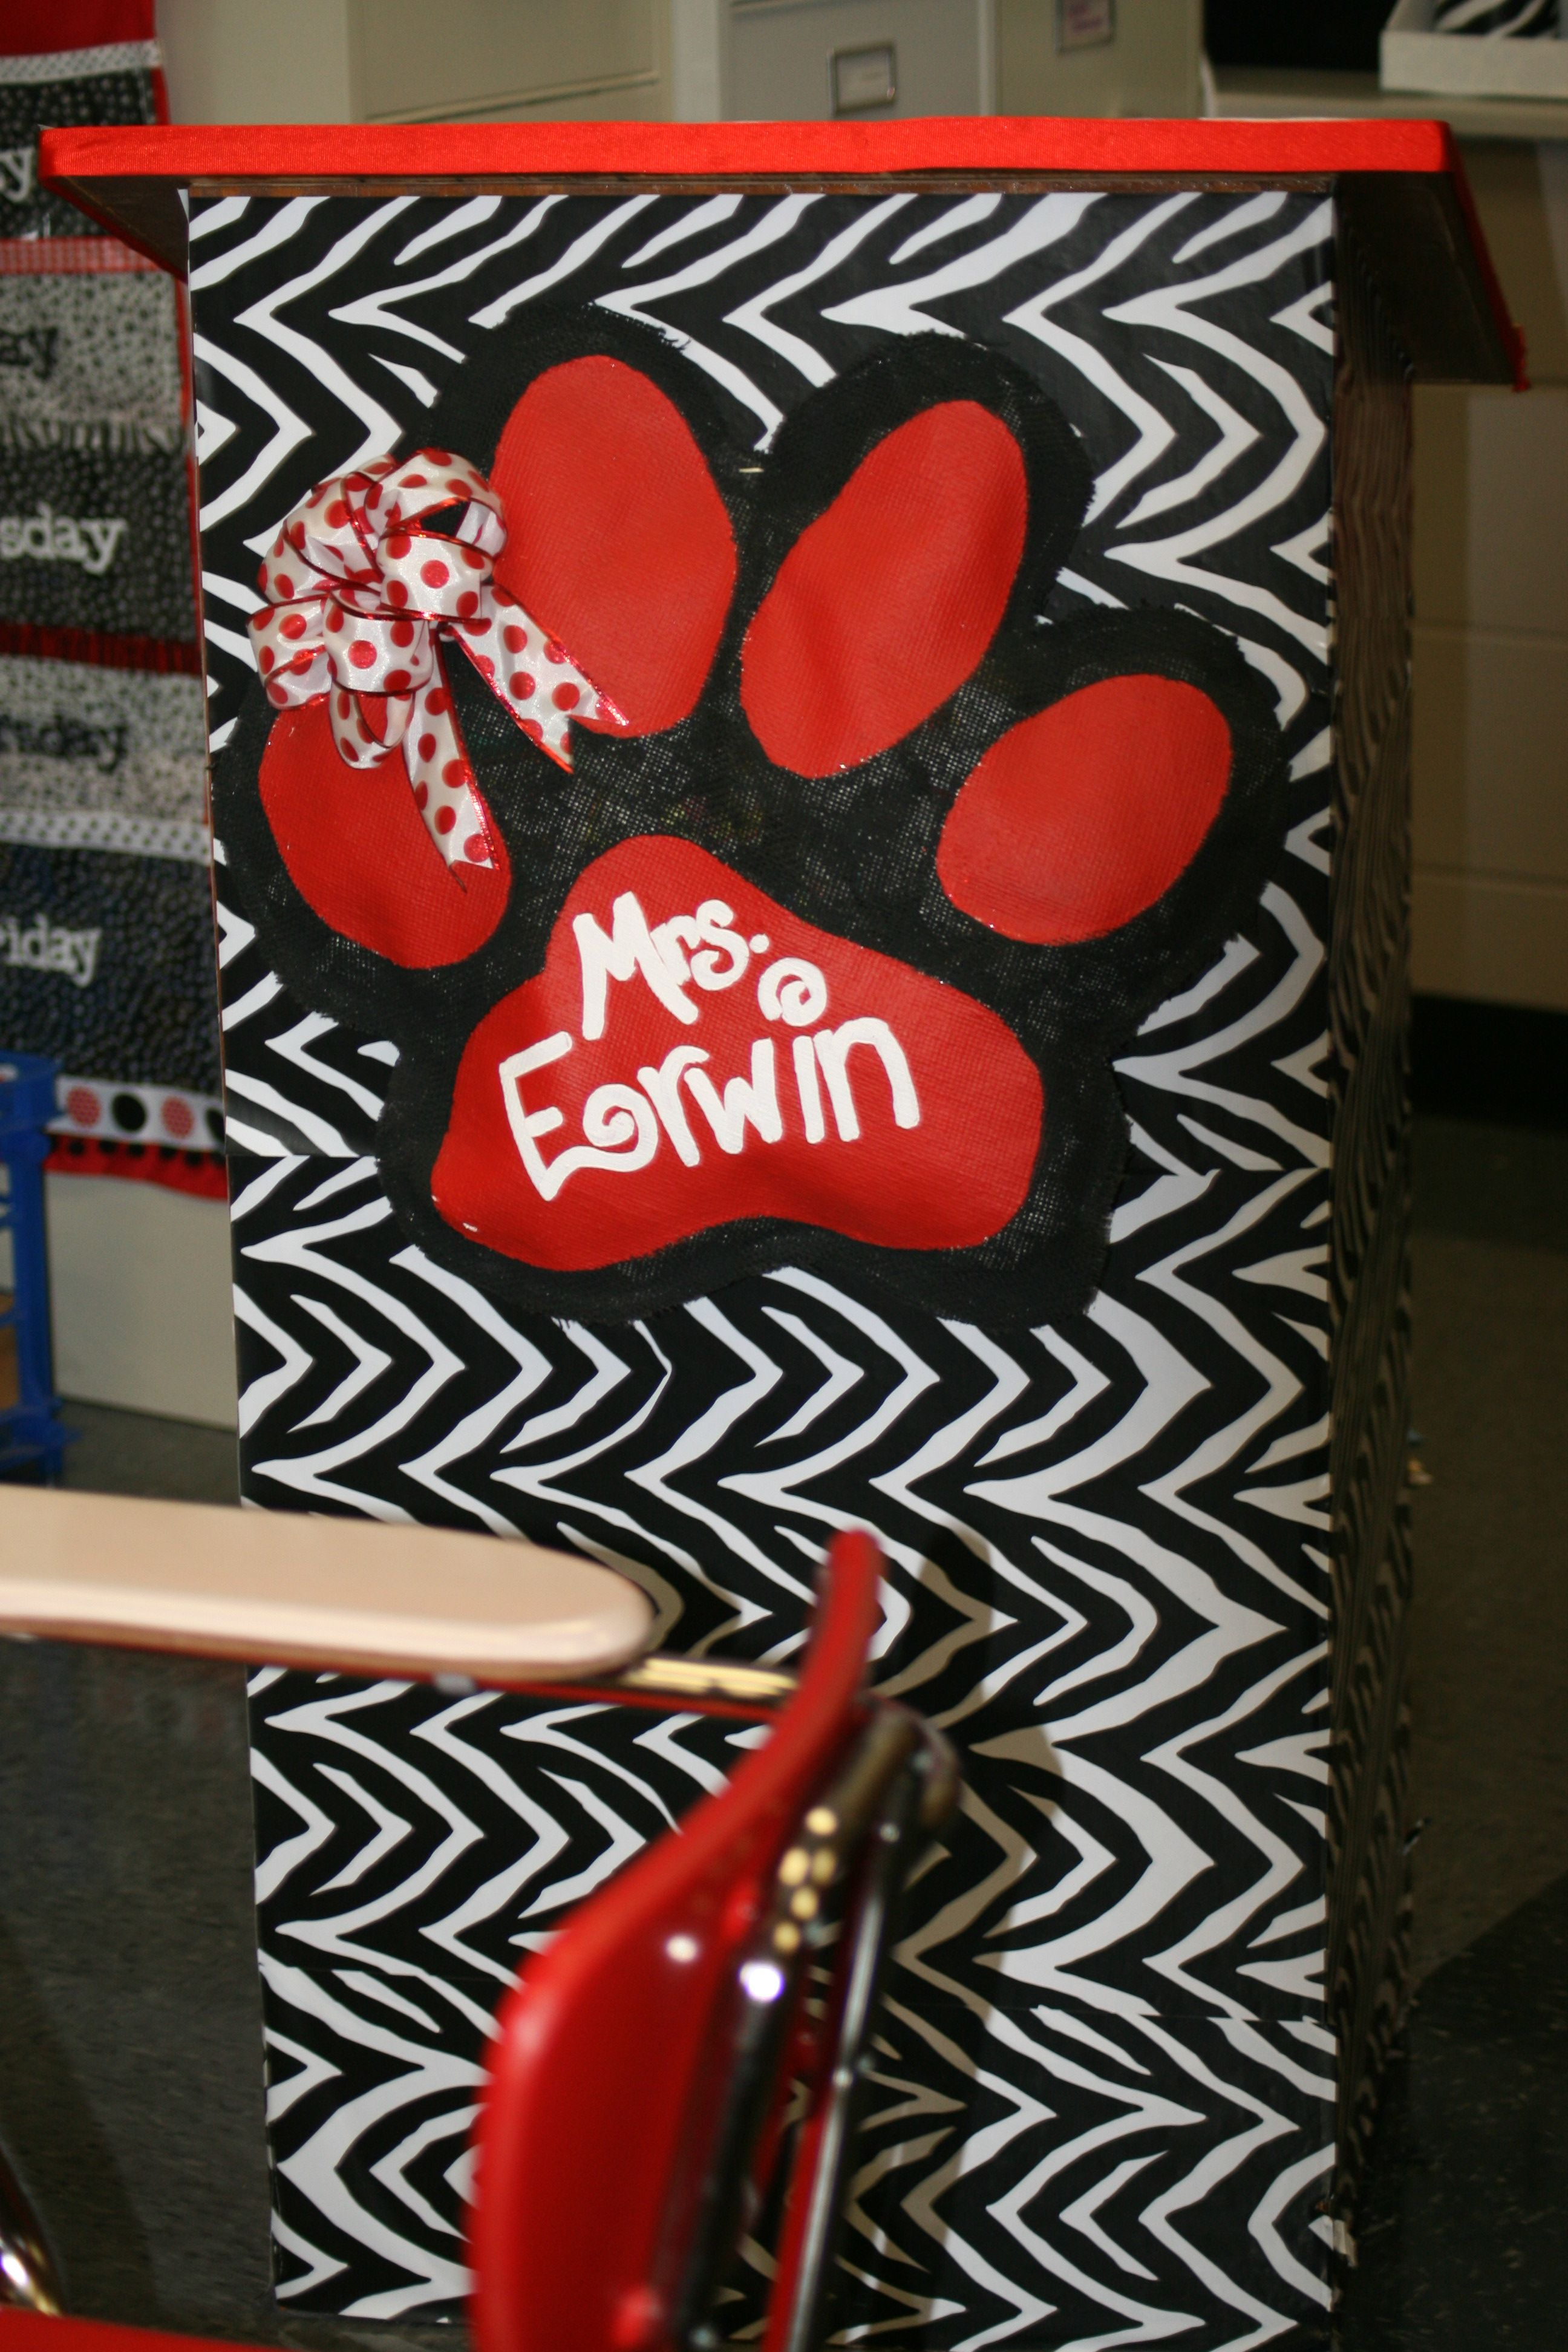 My podium!  I used contact paper purchased from TJ Max to cover the podium.  I made the paw print from burlap, paint, and ribbon.